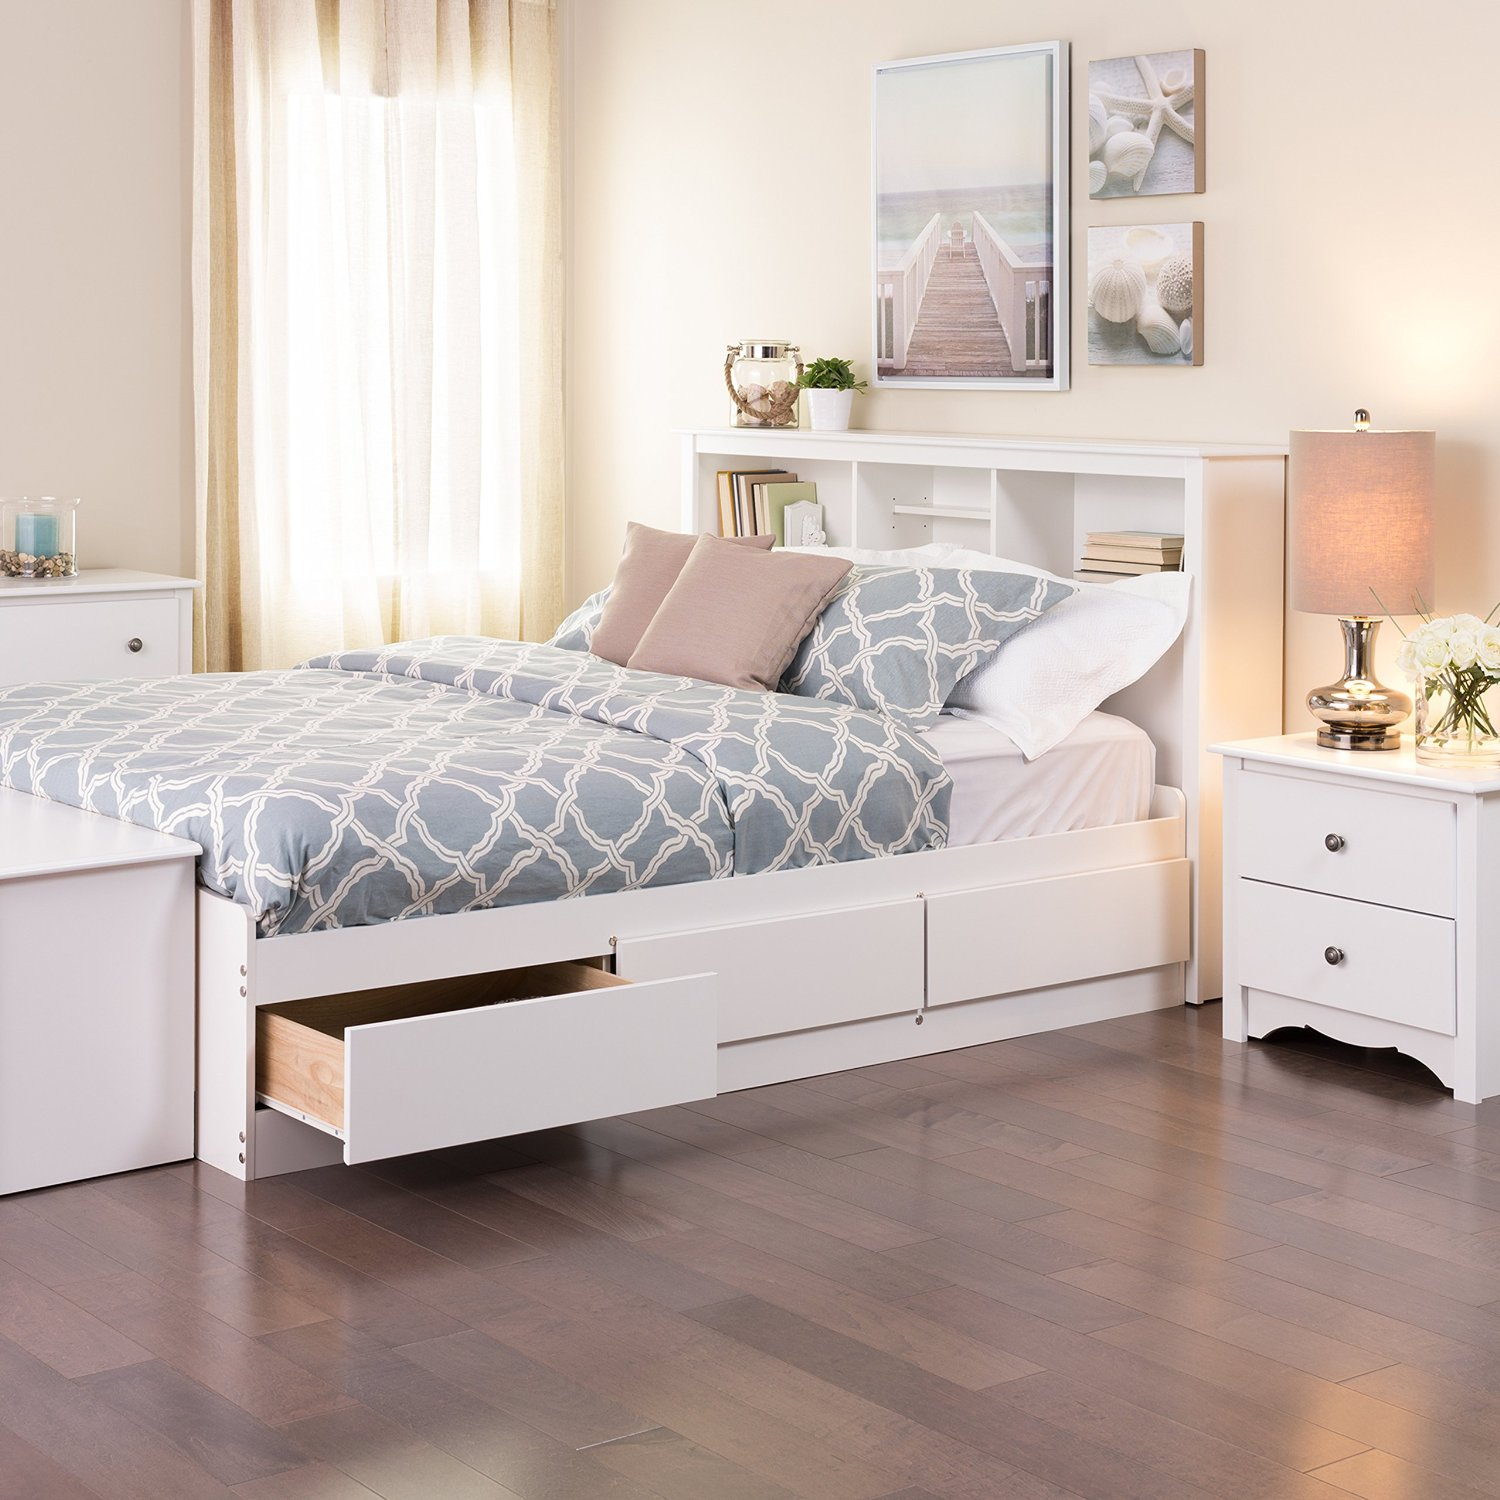 size gray storage full the bed bedroom black platform with mattress padded panel leather drawer drawers under queen spacious beds of frame upholstered